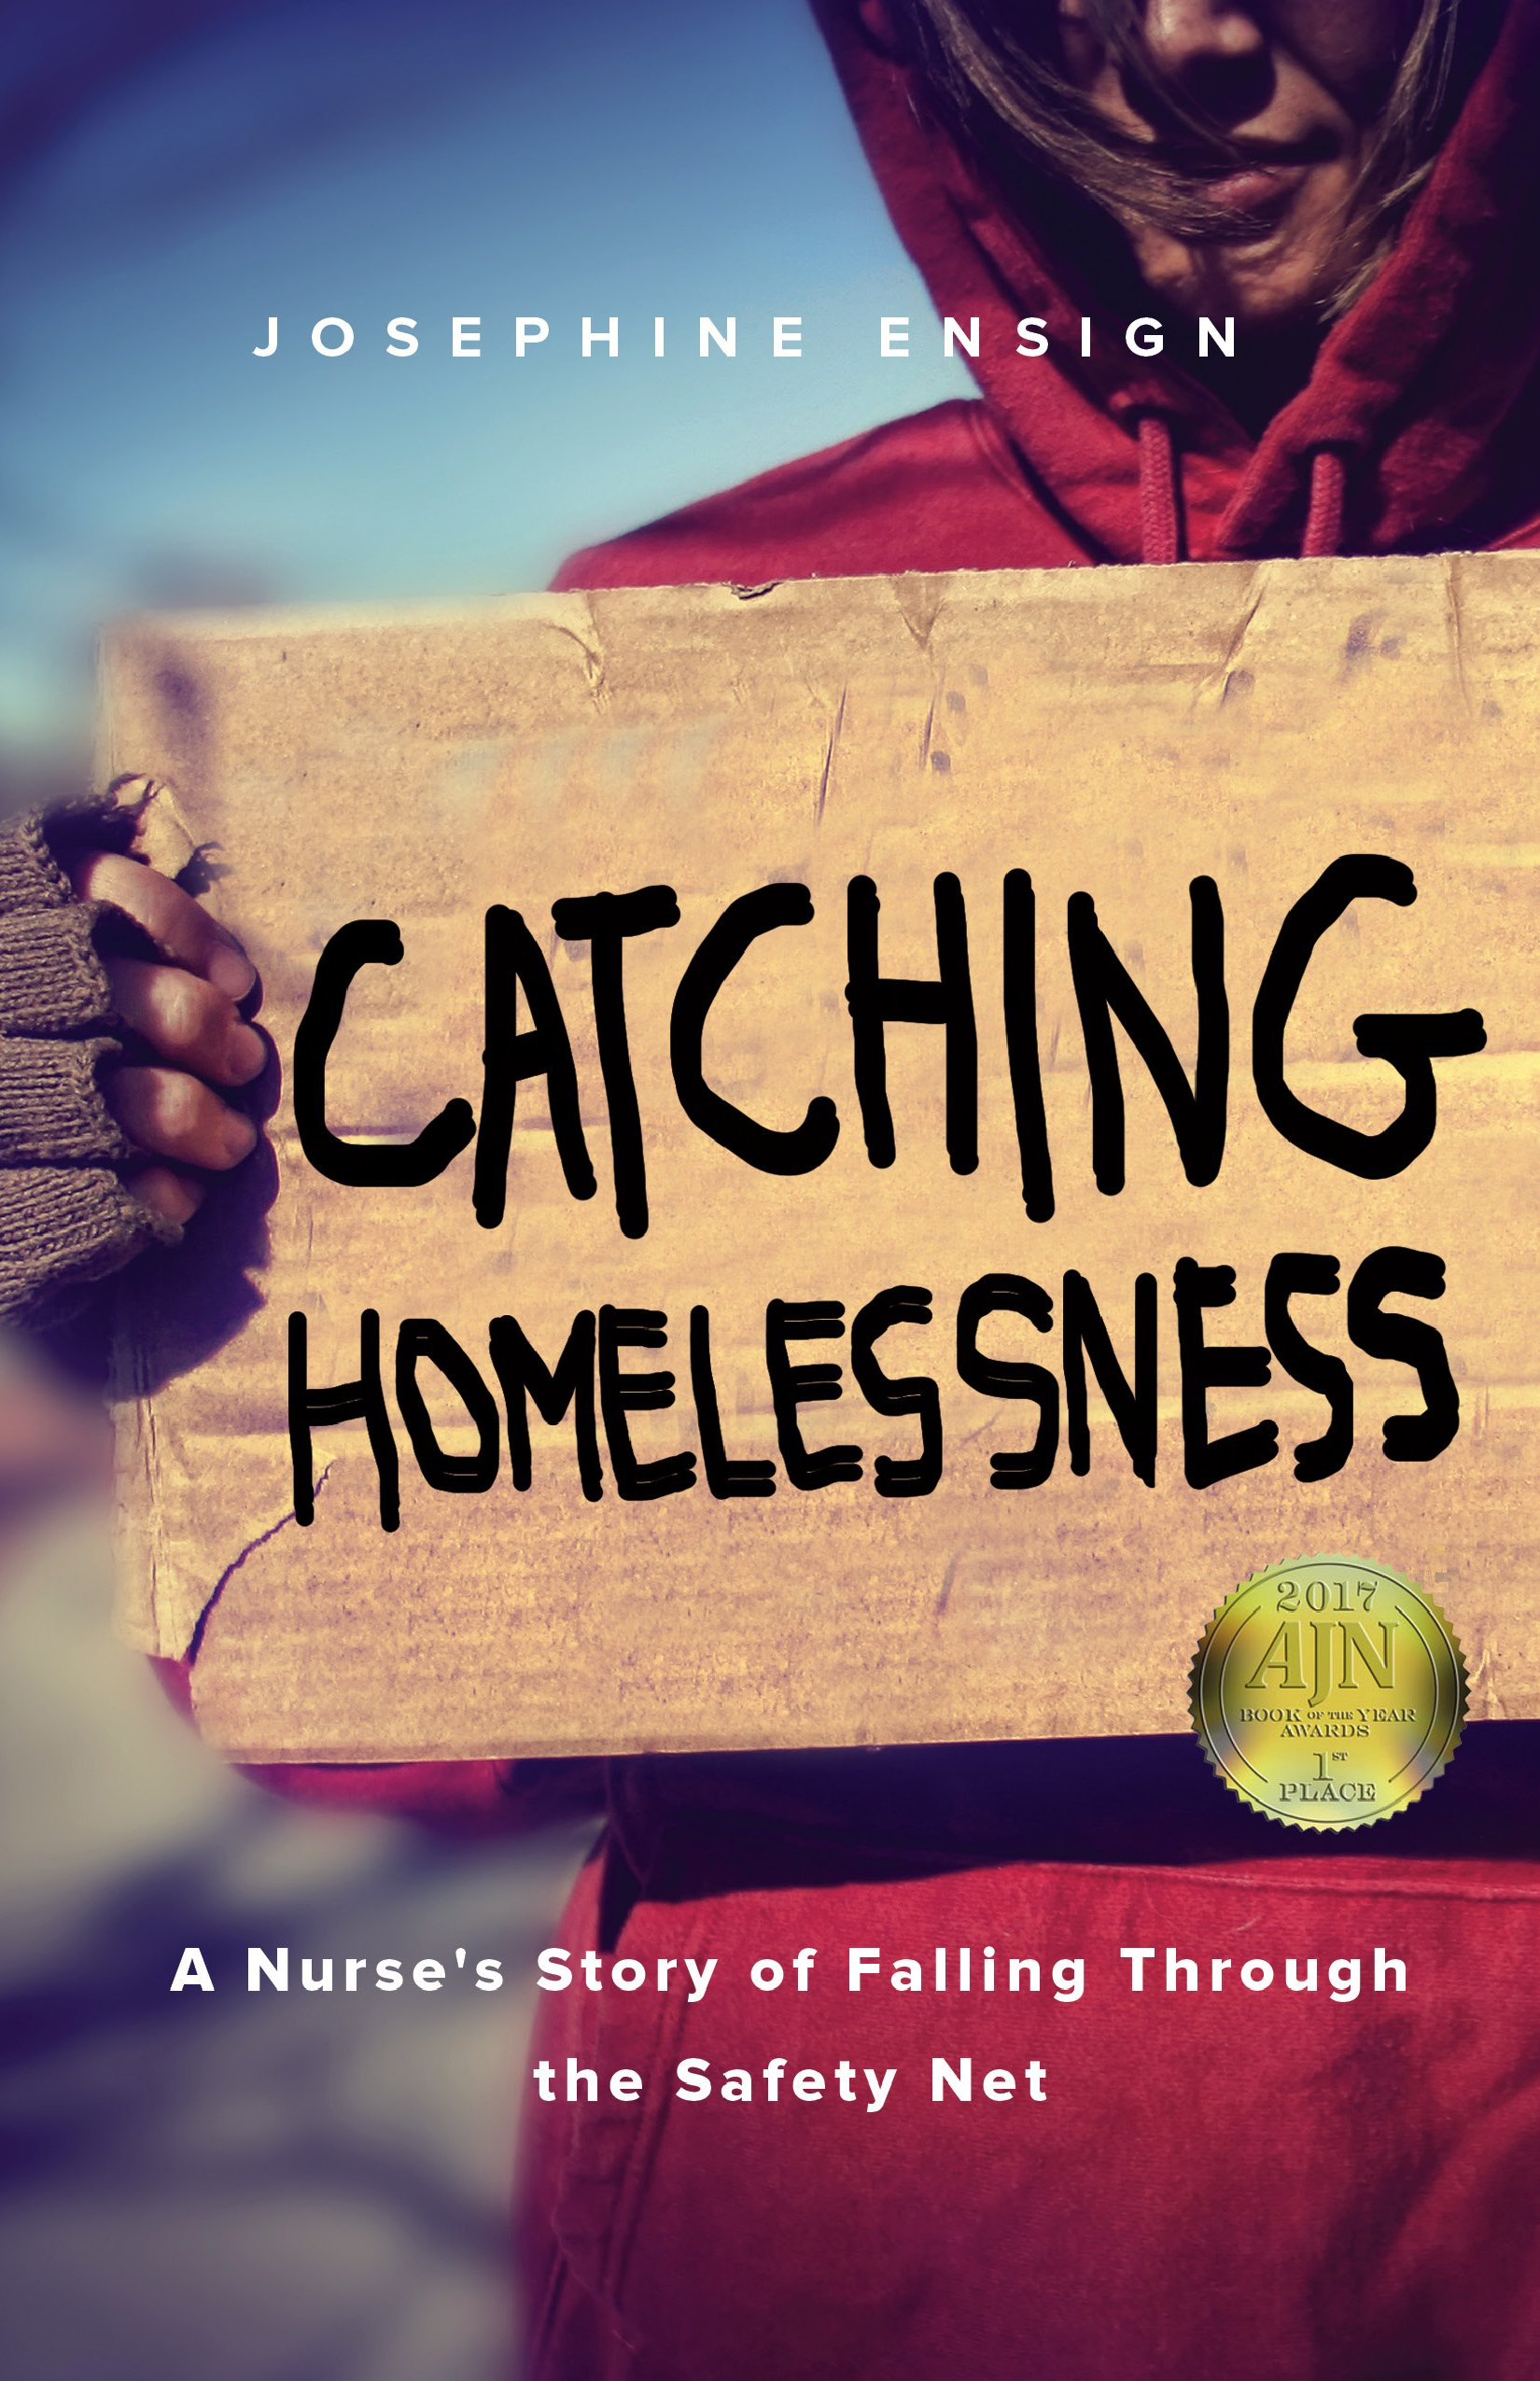 Catching homelessness a nurses story of falling through the catching homelessness a nurses story of falling through the safety net josephine ensign 9781631521171 amazon books fandeluxe Image collections